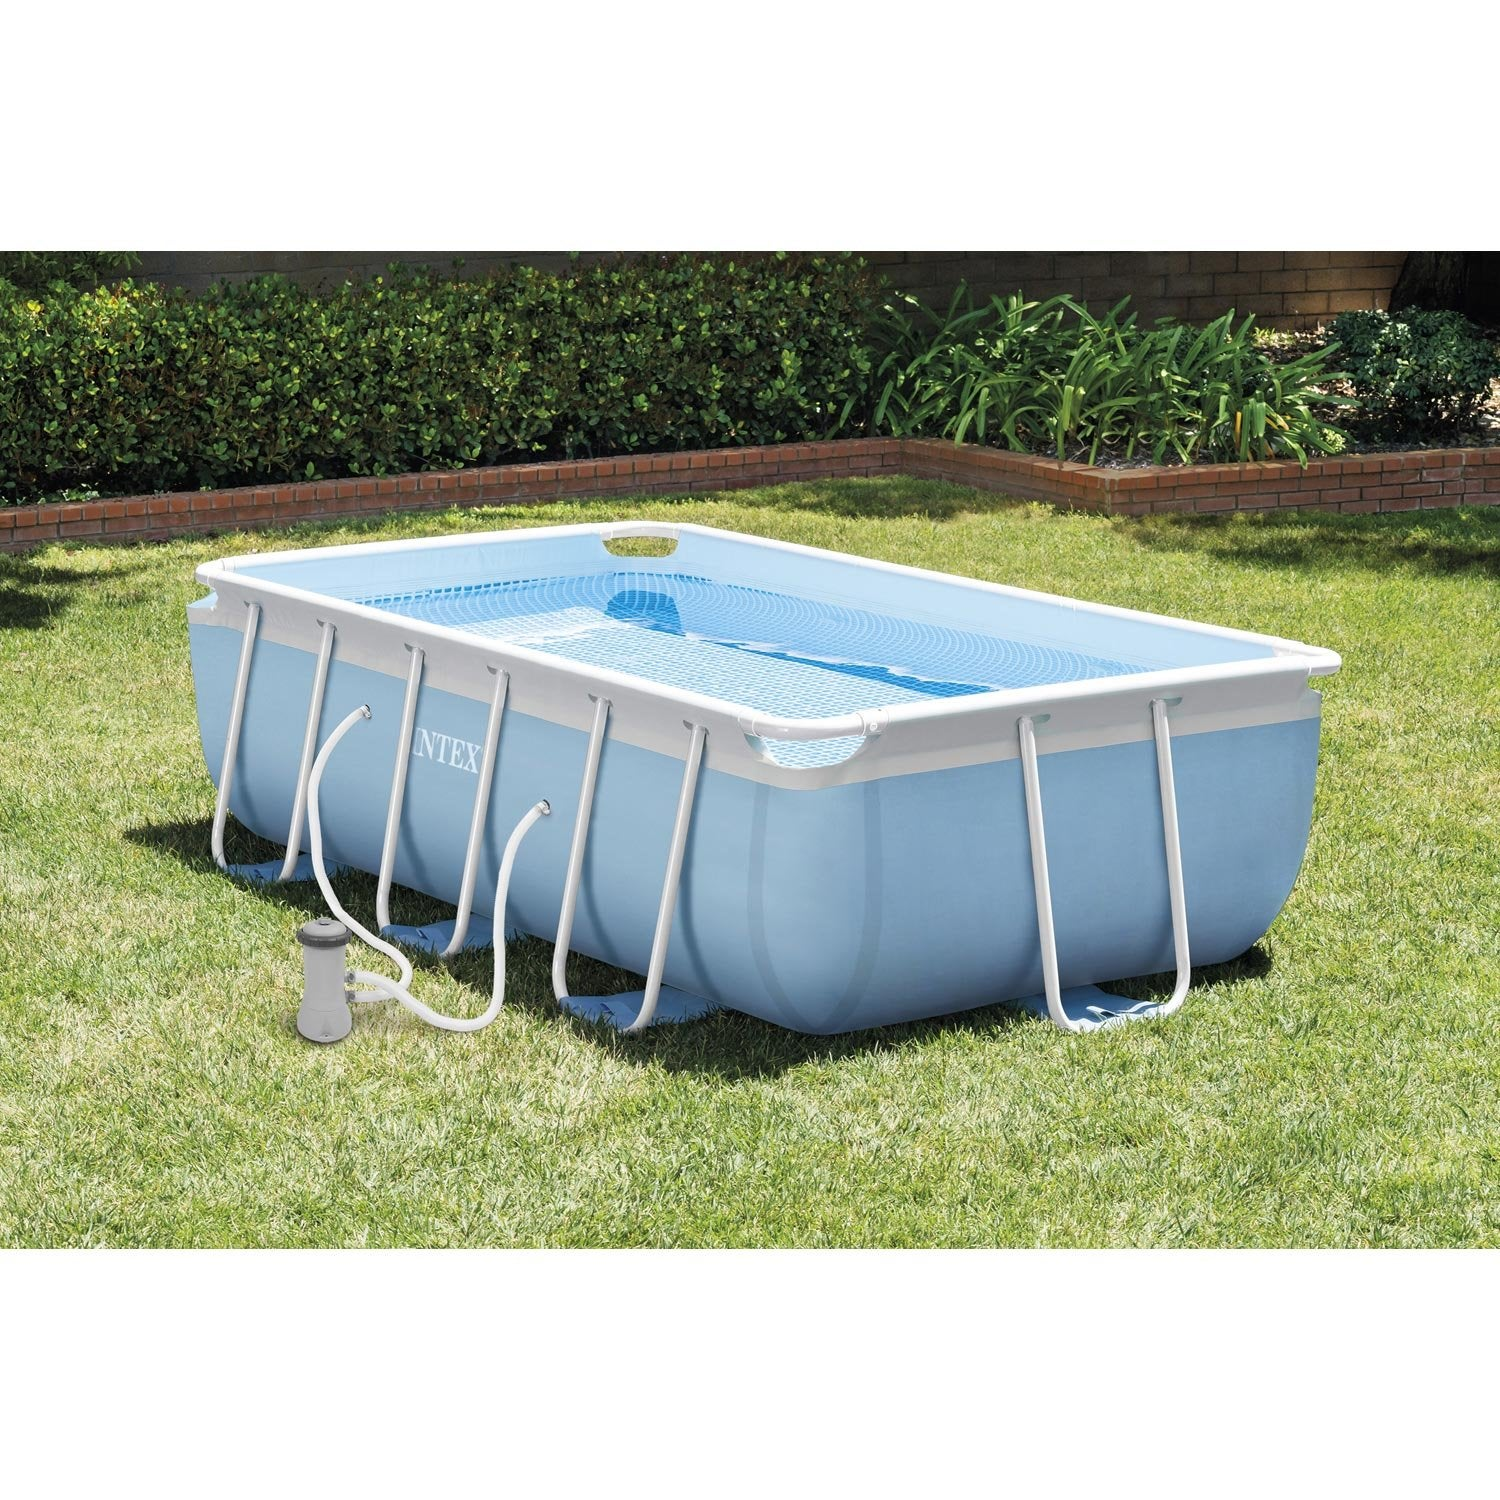 Piscine hors sol autoportante tubulaire intex l 3 4 x l 2 for Piscine tubulaire